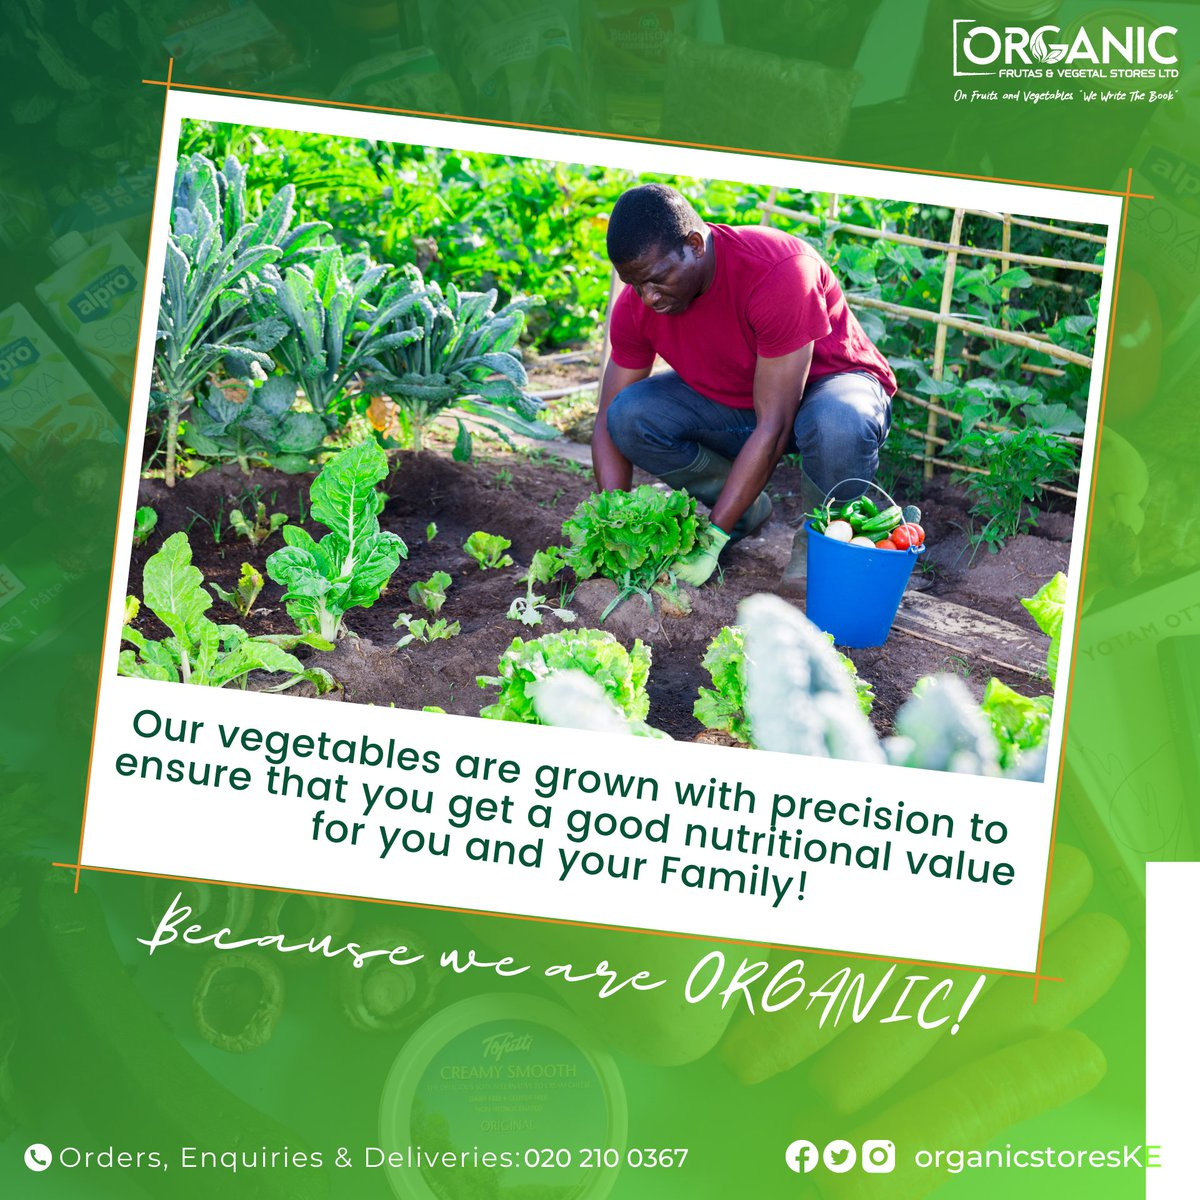 Our vegetables are grown with precision to ensure that you get a good nutritional value for you and your family!   Because we are ORGANIC!   EAT HEALTHY Today 020 210 0367 #OrganicStoresKE #HappyNewYear2021 #OrganicFrutasnVegetal #OrganicsNextGenMall #organicfood #organicfruits